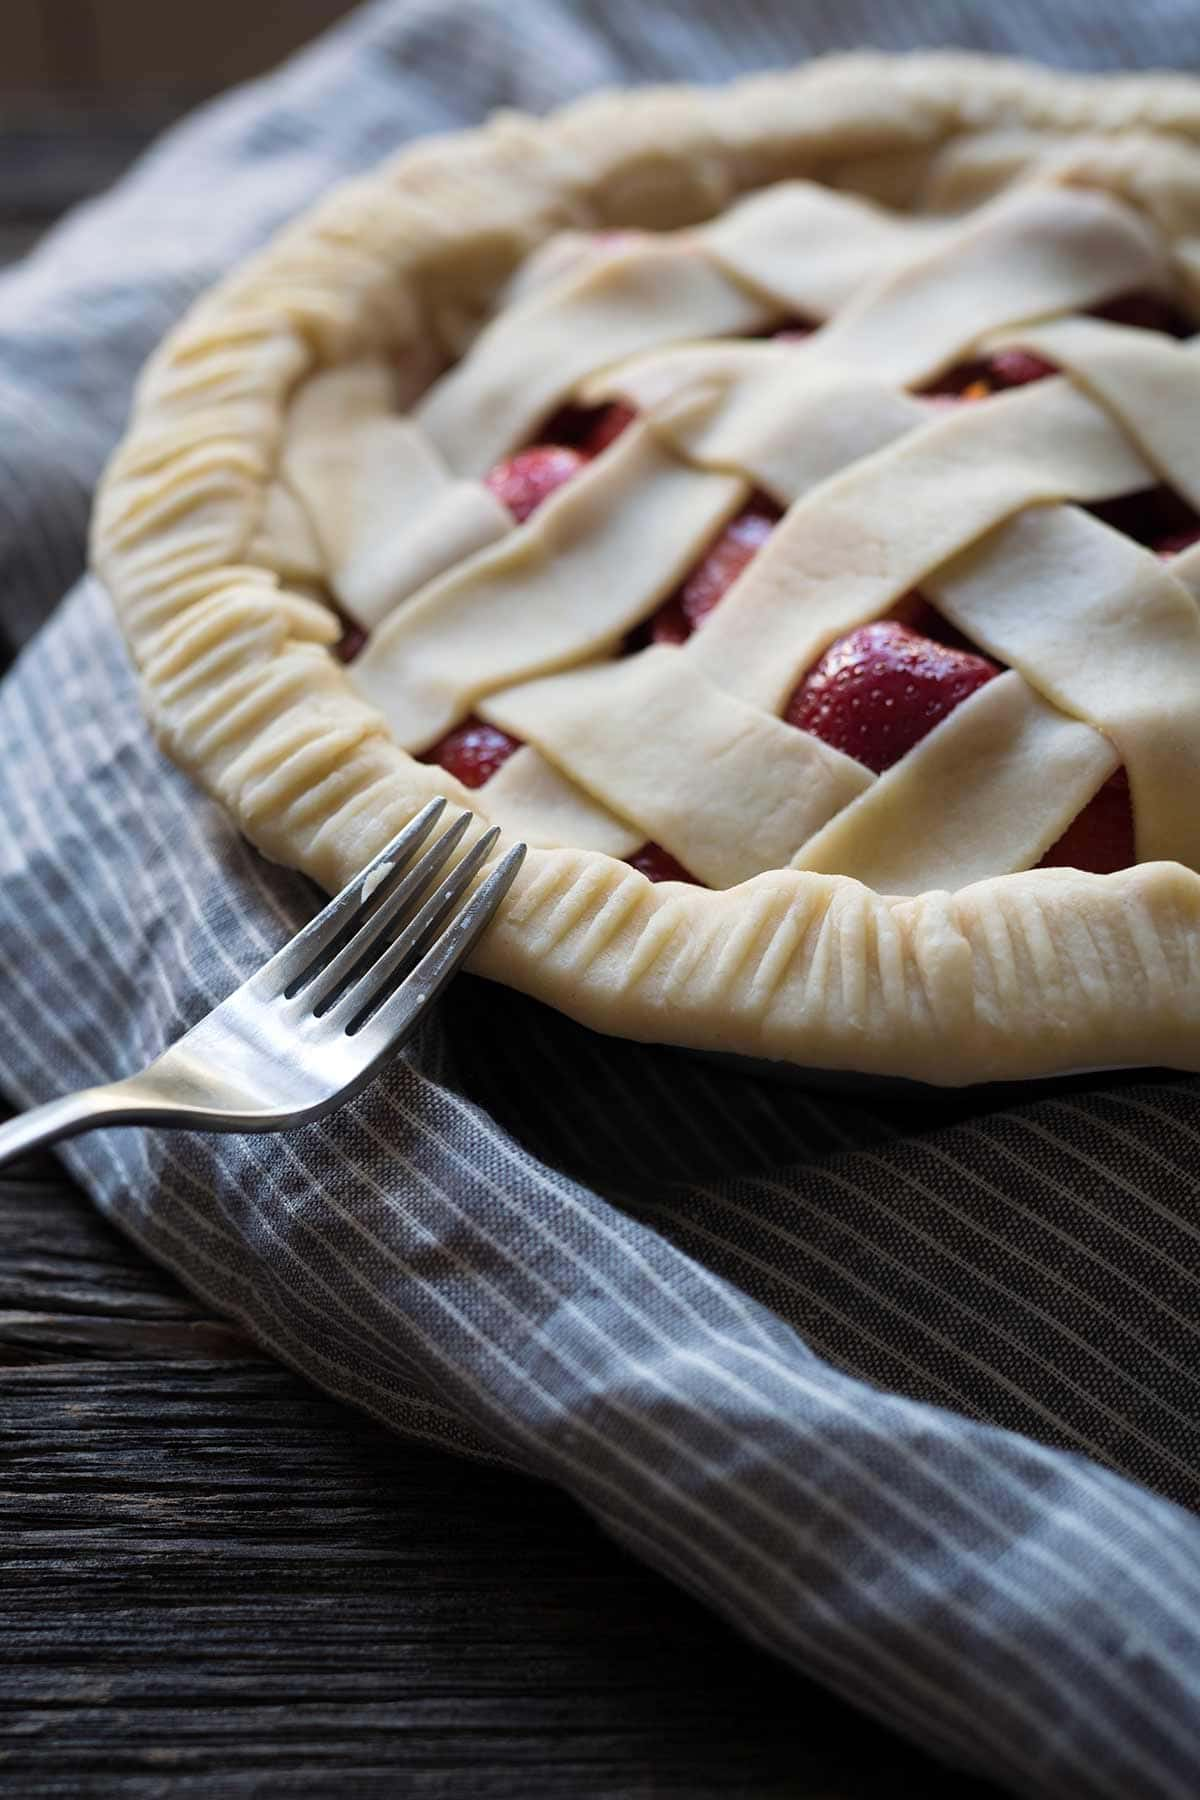 Pressing a fork around the edges of the dough to seal the lattice top edges.